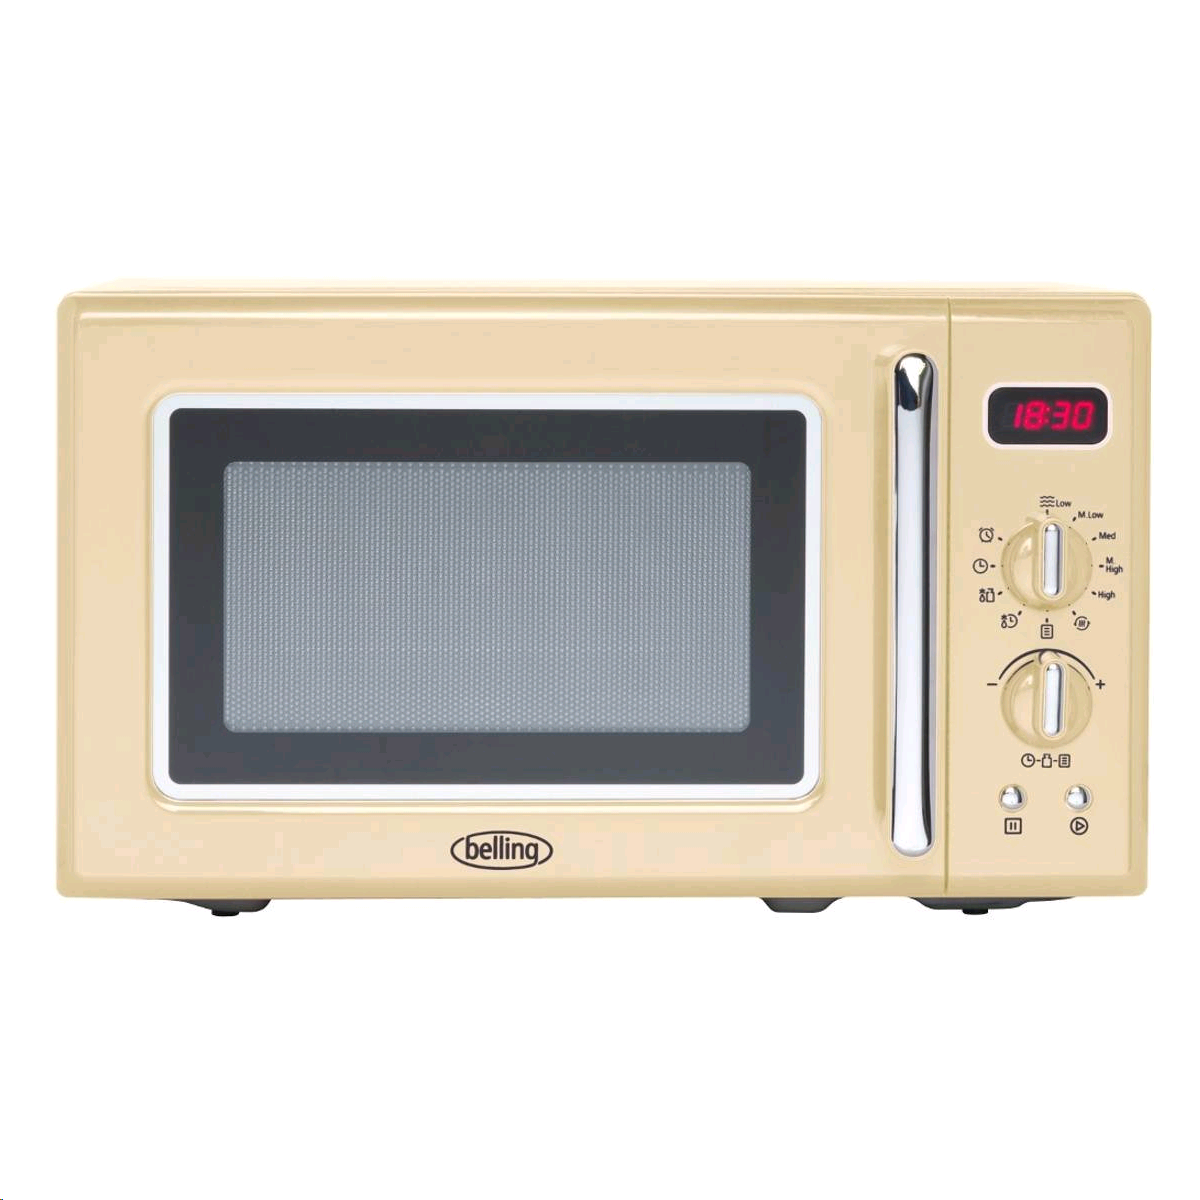 Belling 20ltr Microwave 800w in CREAM c/w Clock Timer